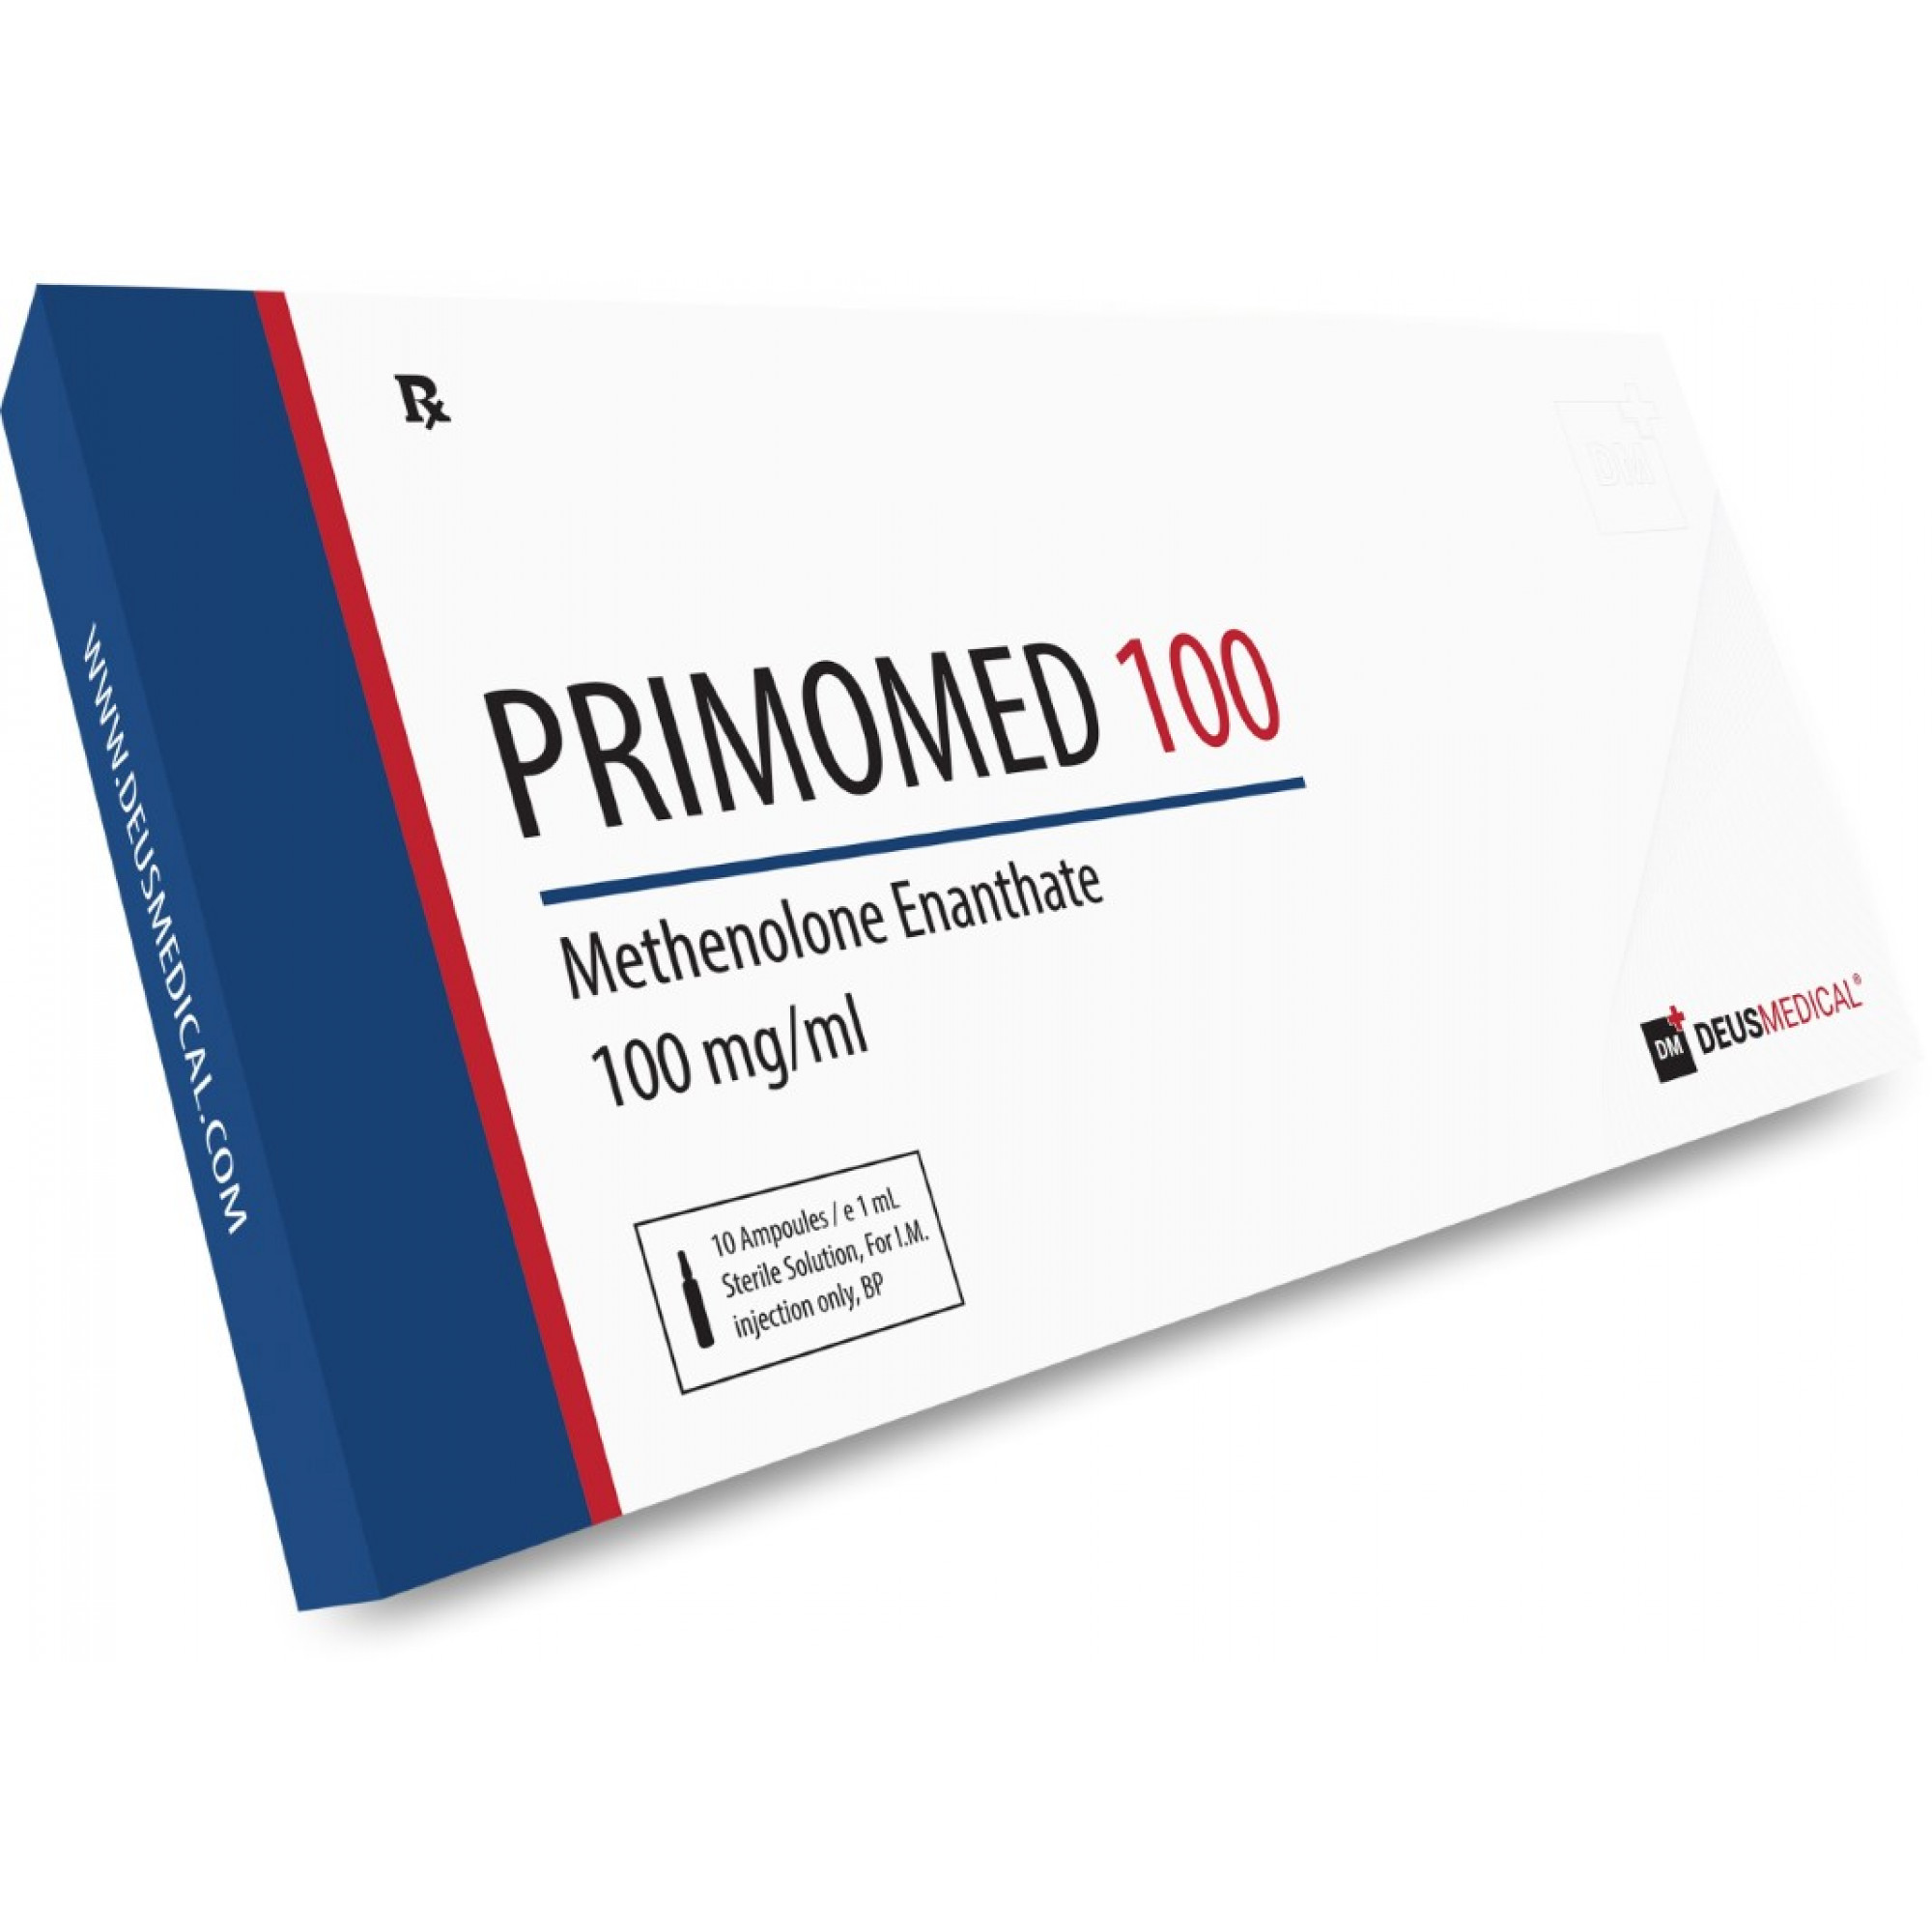 PRIMOMED 100 (Methenolone Enanthate), DEUS MEDICAL, BUY STEROIDS ONLINE - www.DEUSPOWER.com